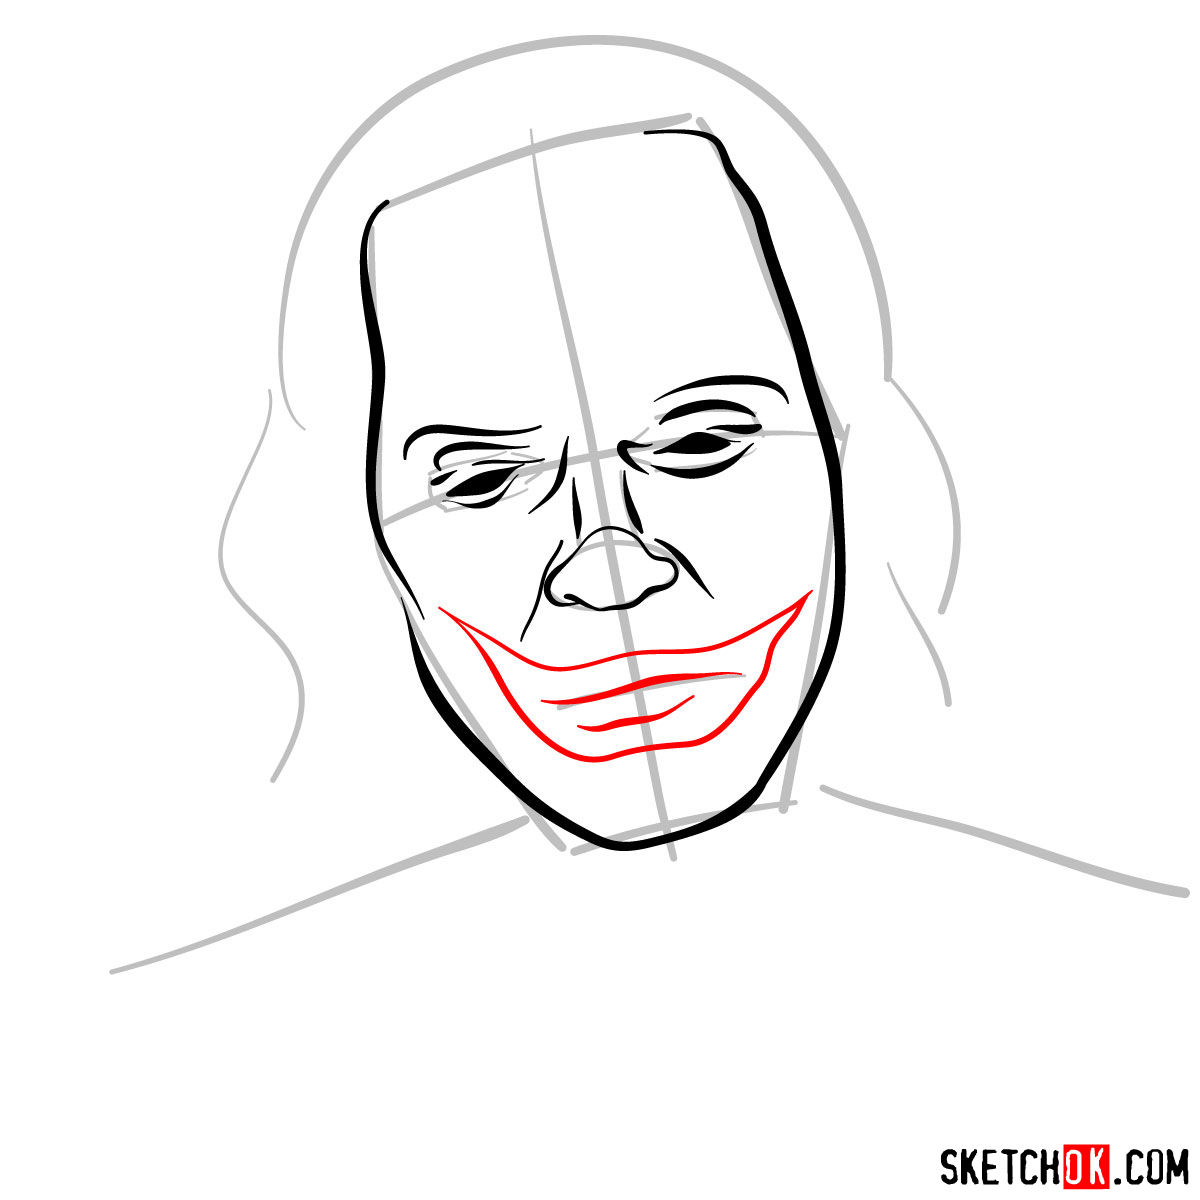 How to draw Joker by Joaquin Phoenix - step 06